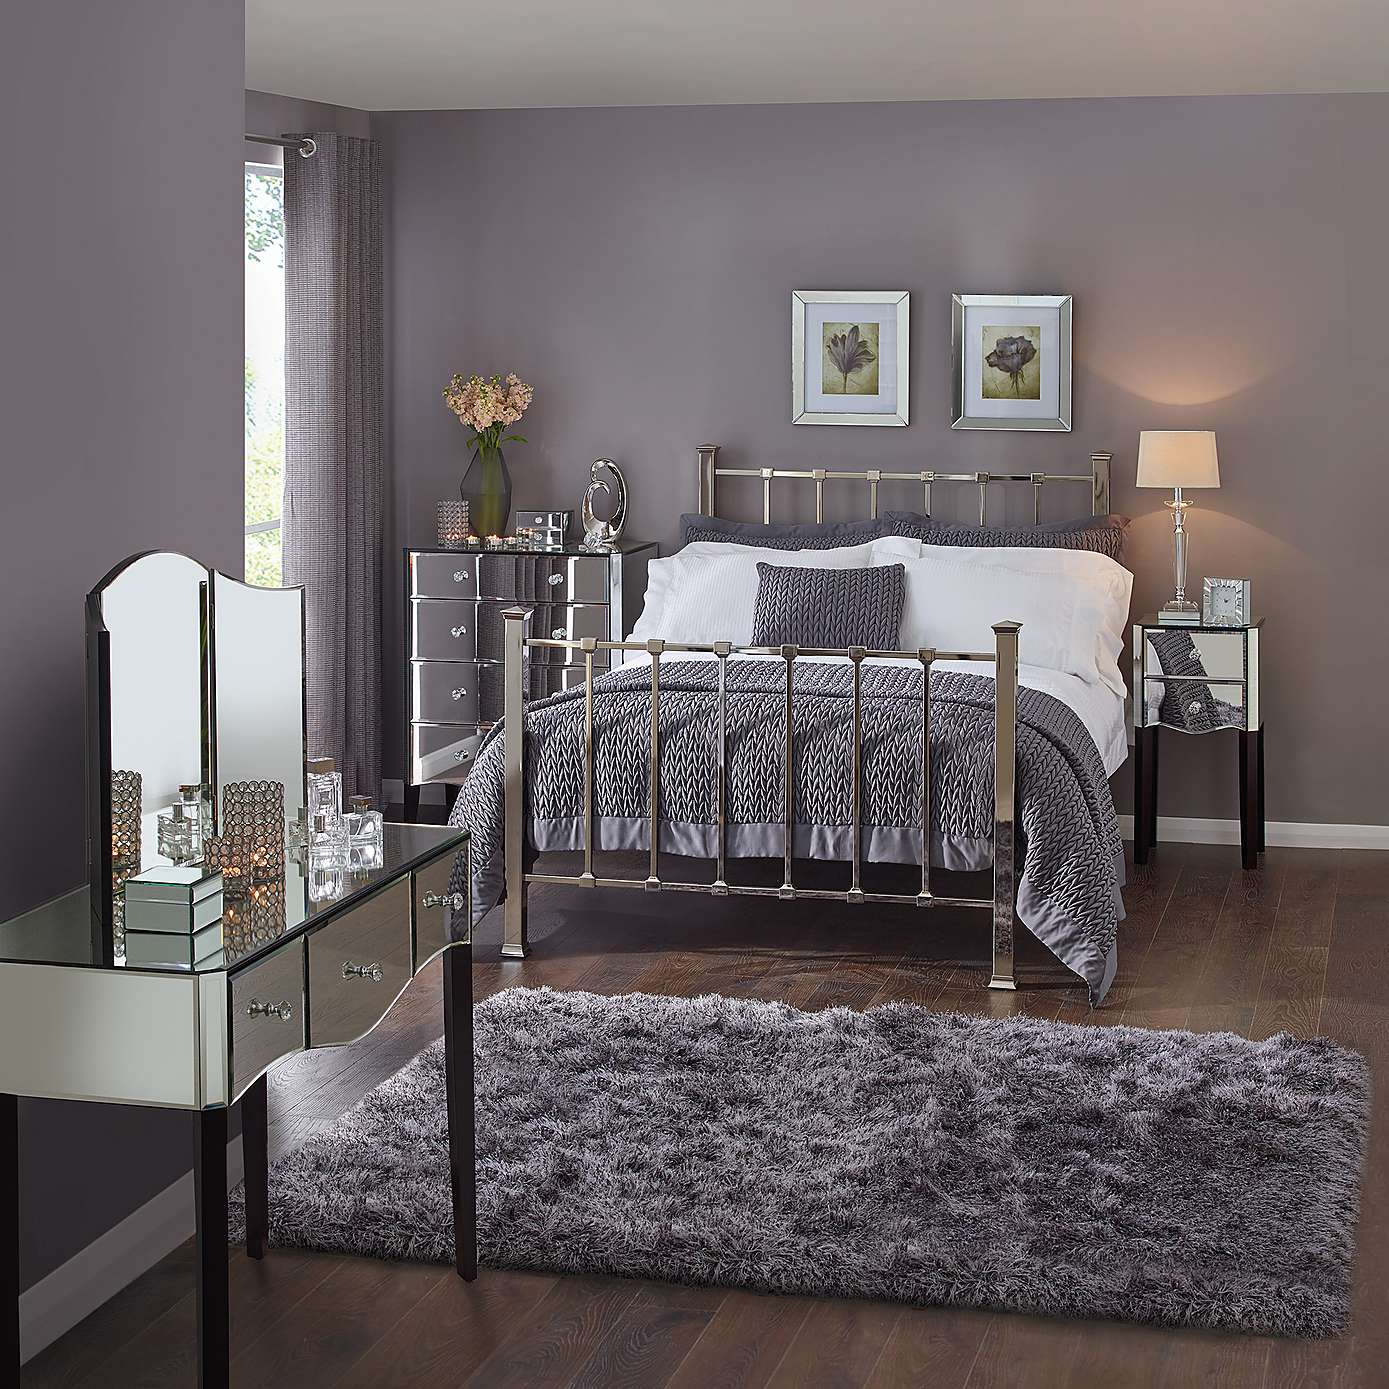 The hows and whats of mirrored bedroom furniture